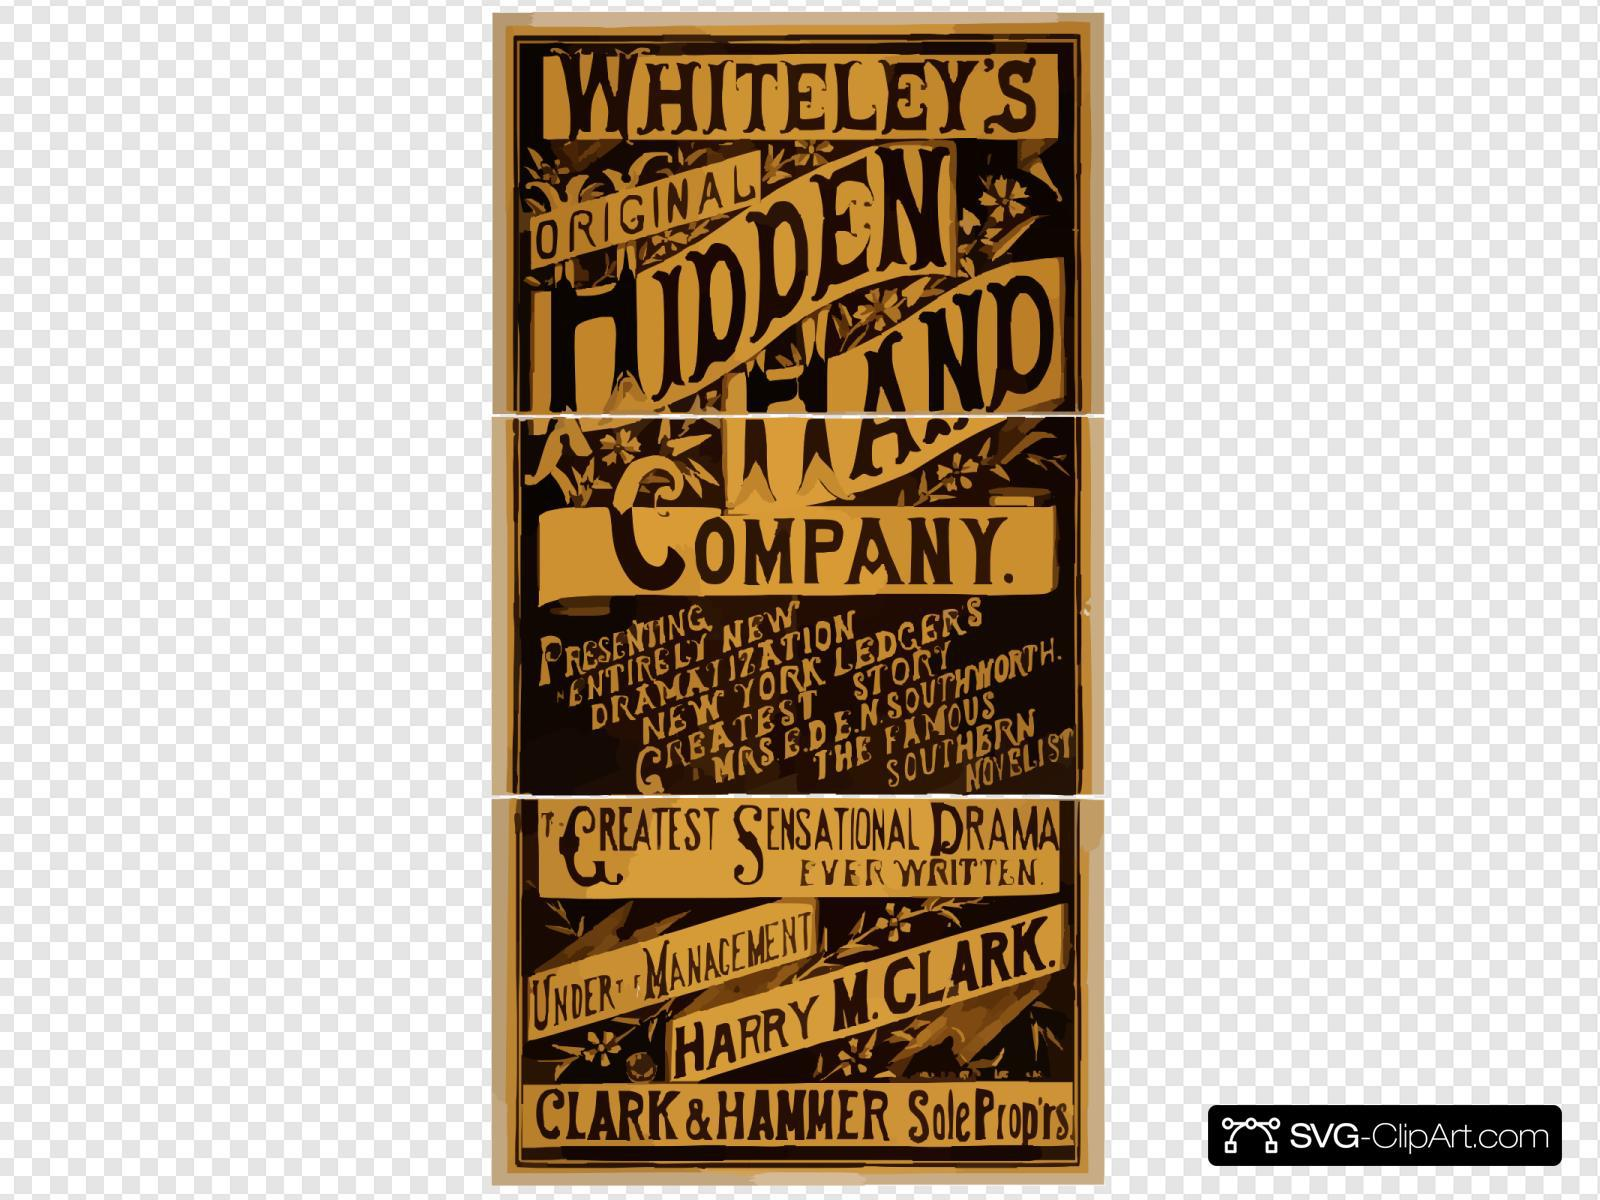 Whiteley S Original Hidden Hand Company Presenting An Entirely New Dramatization Of The New York Ledger S Greatest Story By Mrs. E.d.e.n. Southworth, The Famous Southern Novelist : The Greatest Sensational Drama Ever Written.